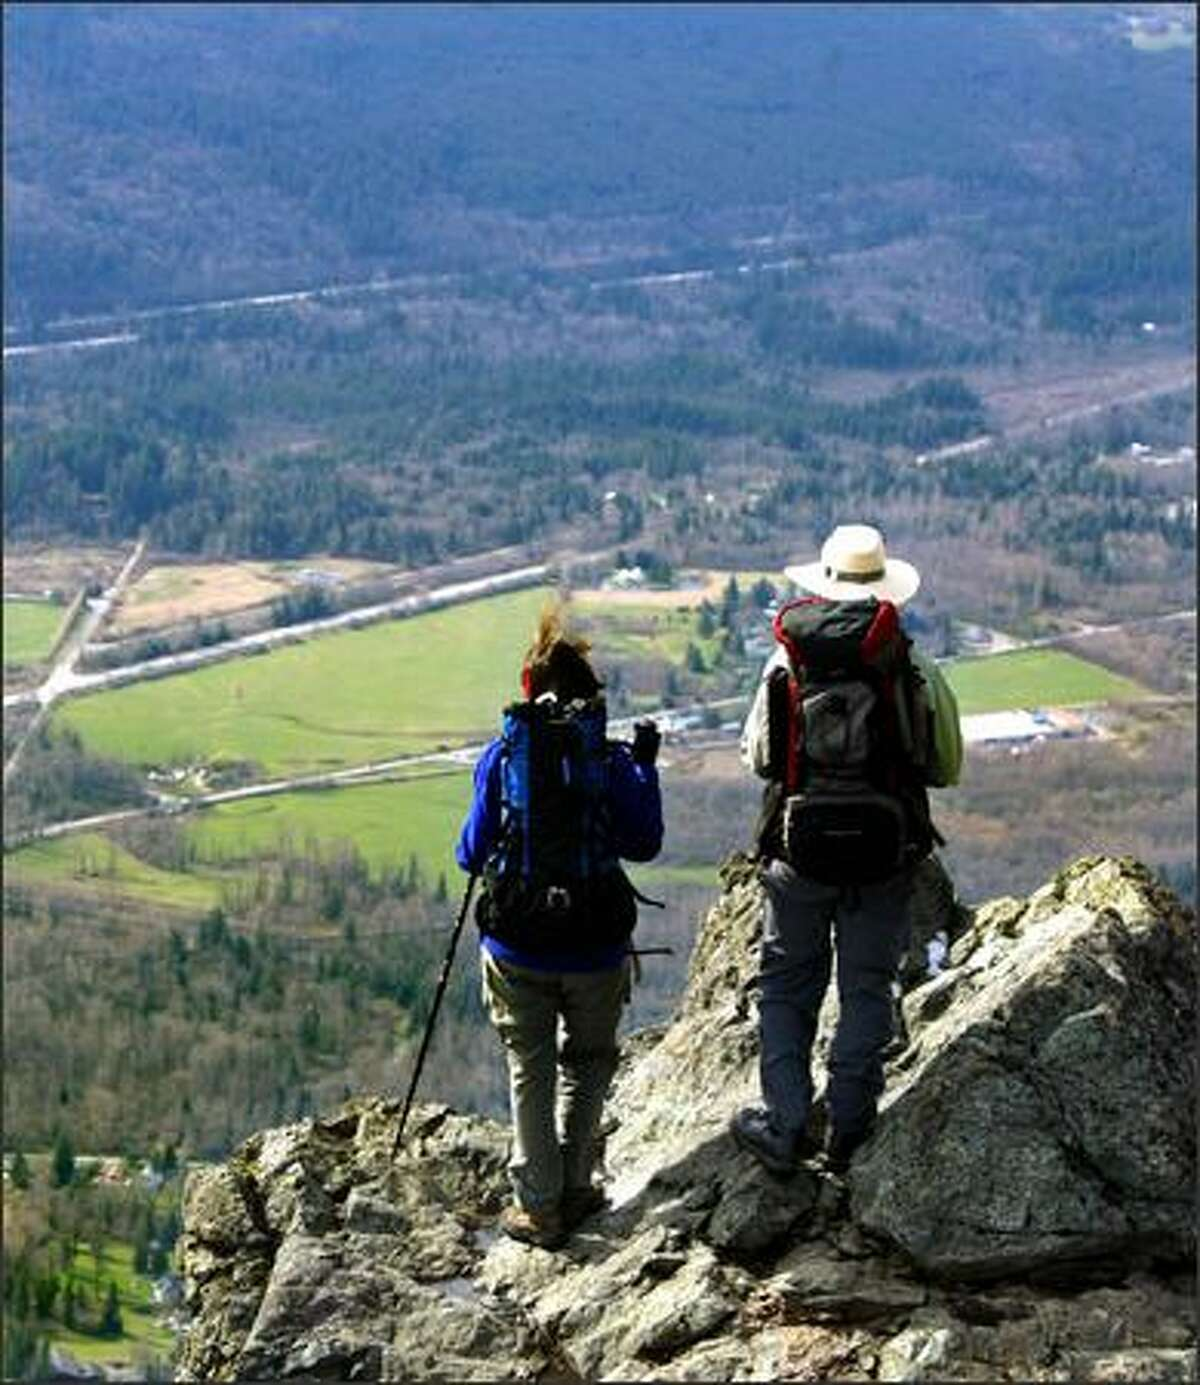 Jeanne Atencio, left, of Sumner, and Peter Smiley of Federal Way admire one of the incredible views from the top of Mount Si.